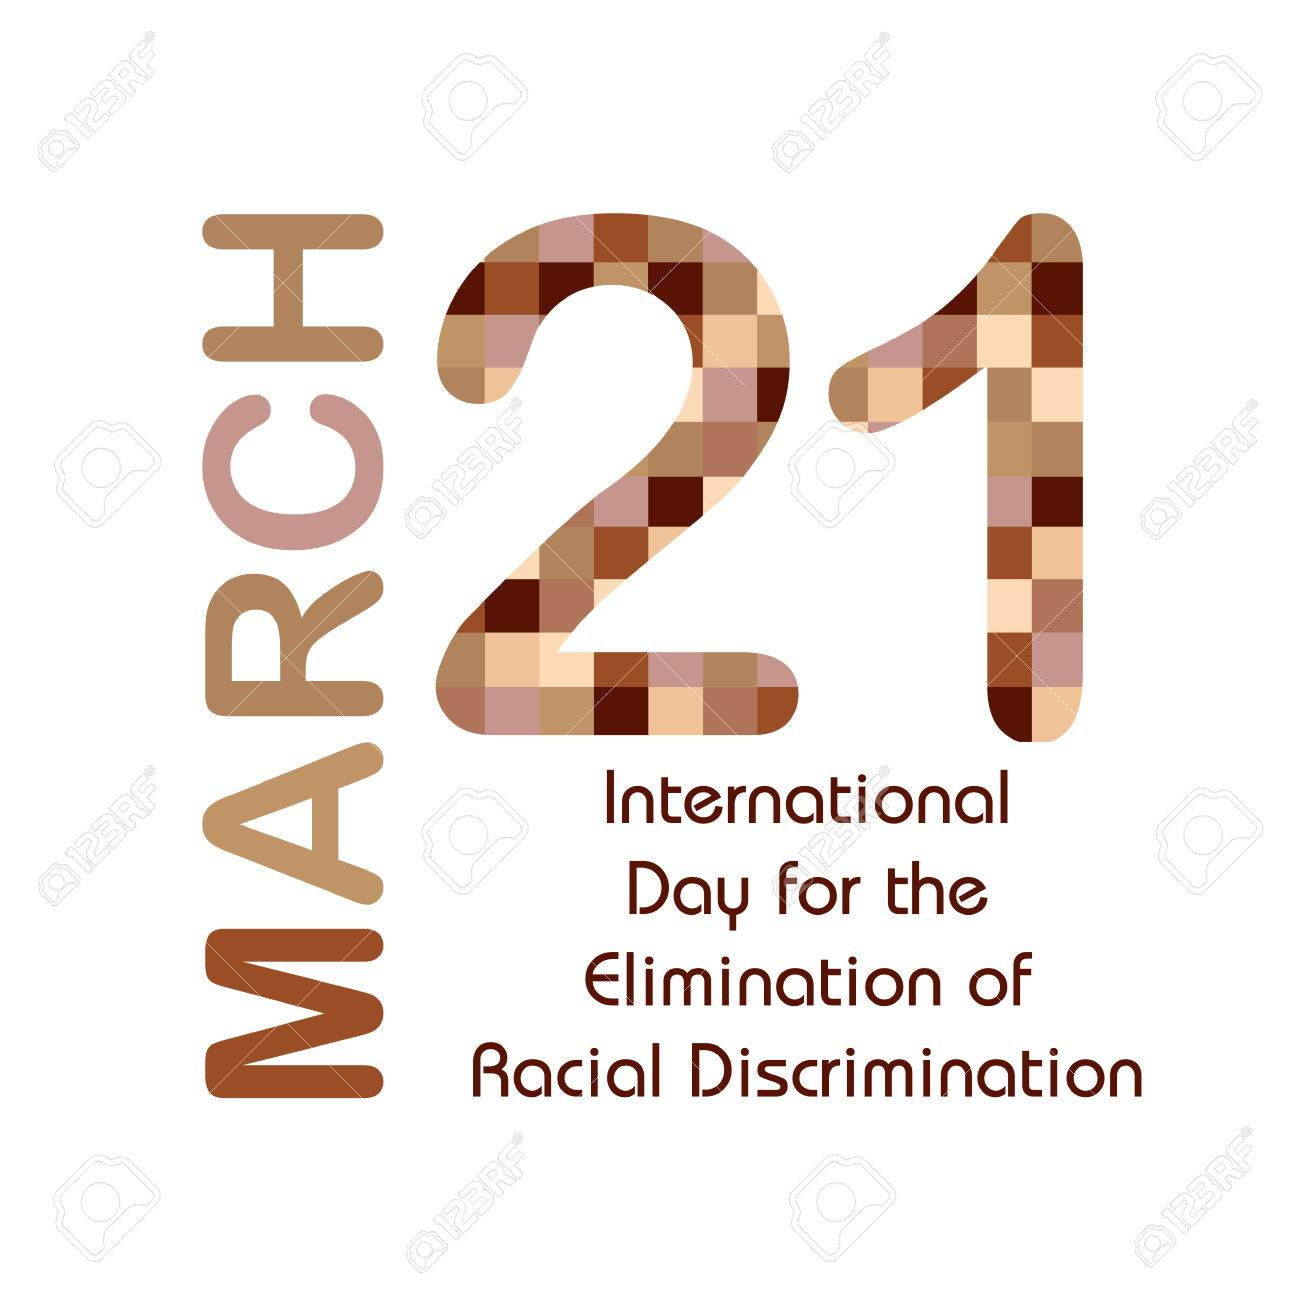 March 21 international day for elimination of racism royalty free march 21 international day for elimination of racism stock vector 54970920 biocorpaavc Images